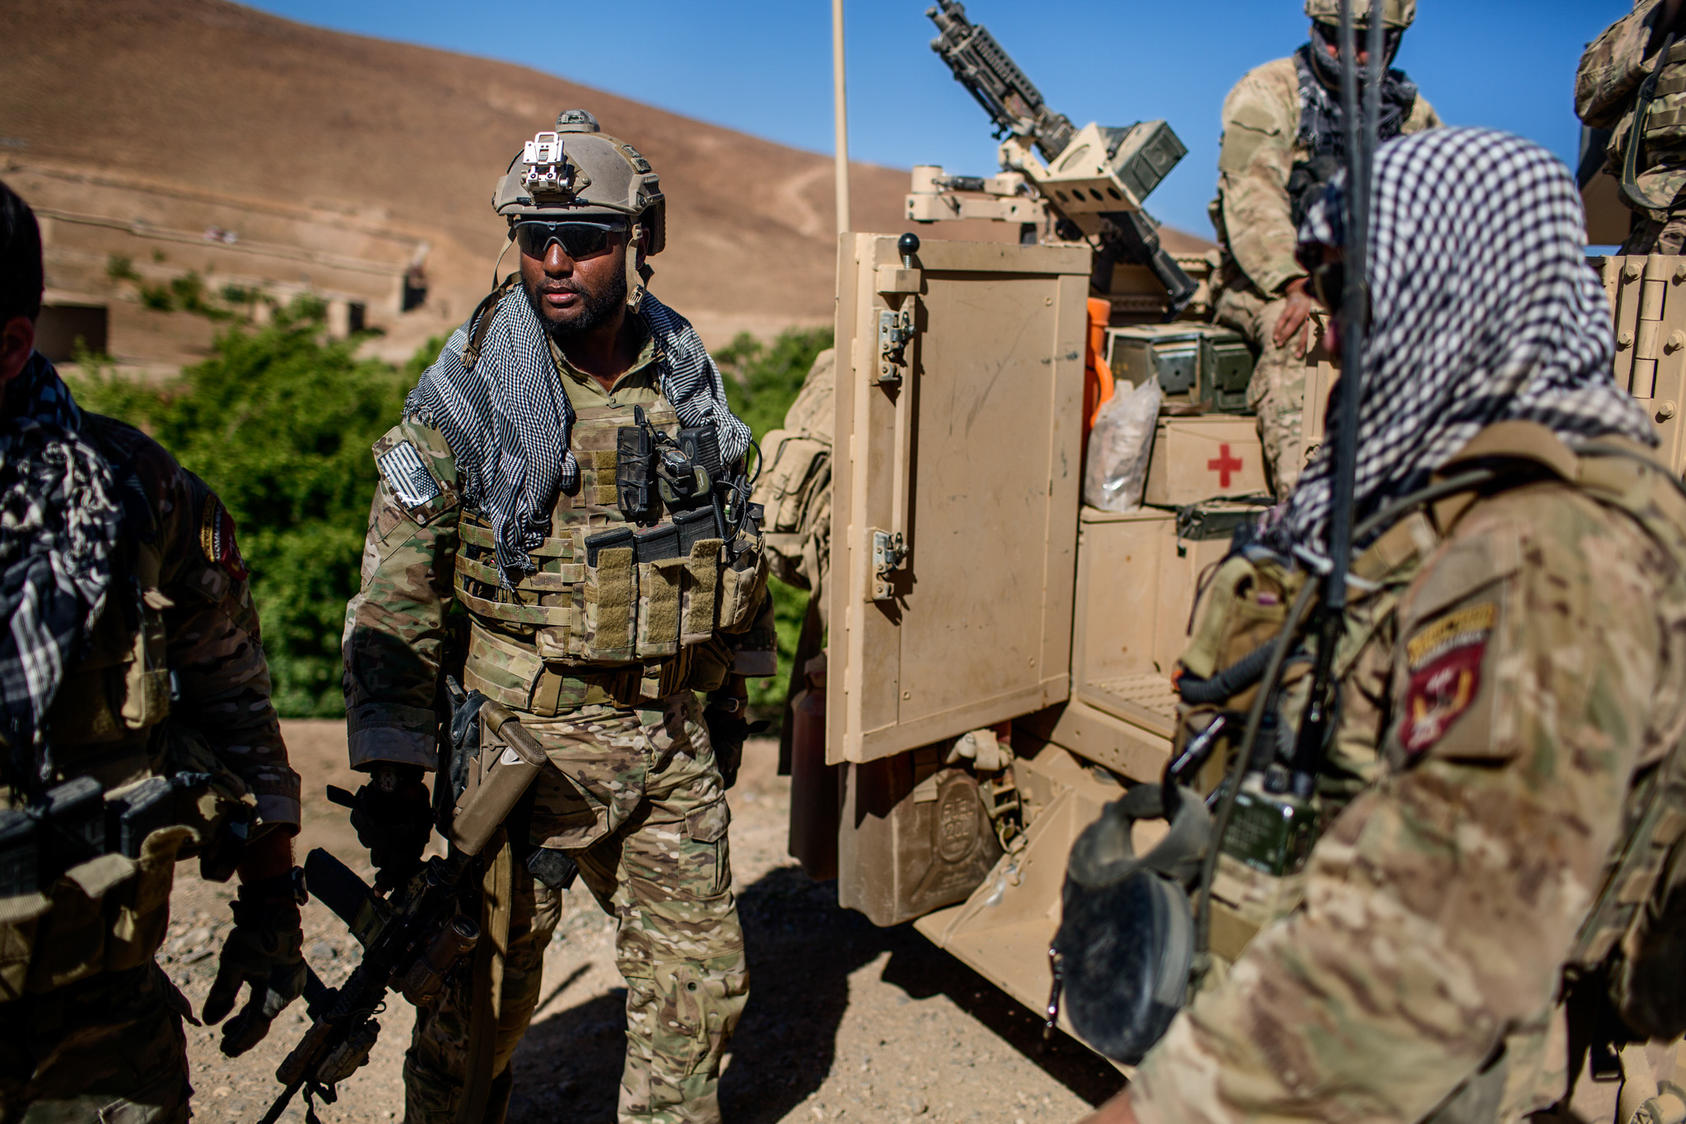 American and Afghan Special Forces soldiers during a patrol in Afghanistan's Parwan province, June 26, 2014. President Obama will announce on Thursday, Oct. 15, 2015 that the U.S. will halt its military withdrawal from Afghanistan and instead keep thousands of troops in the country through the end of his term in 2017.